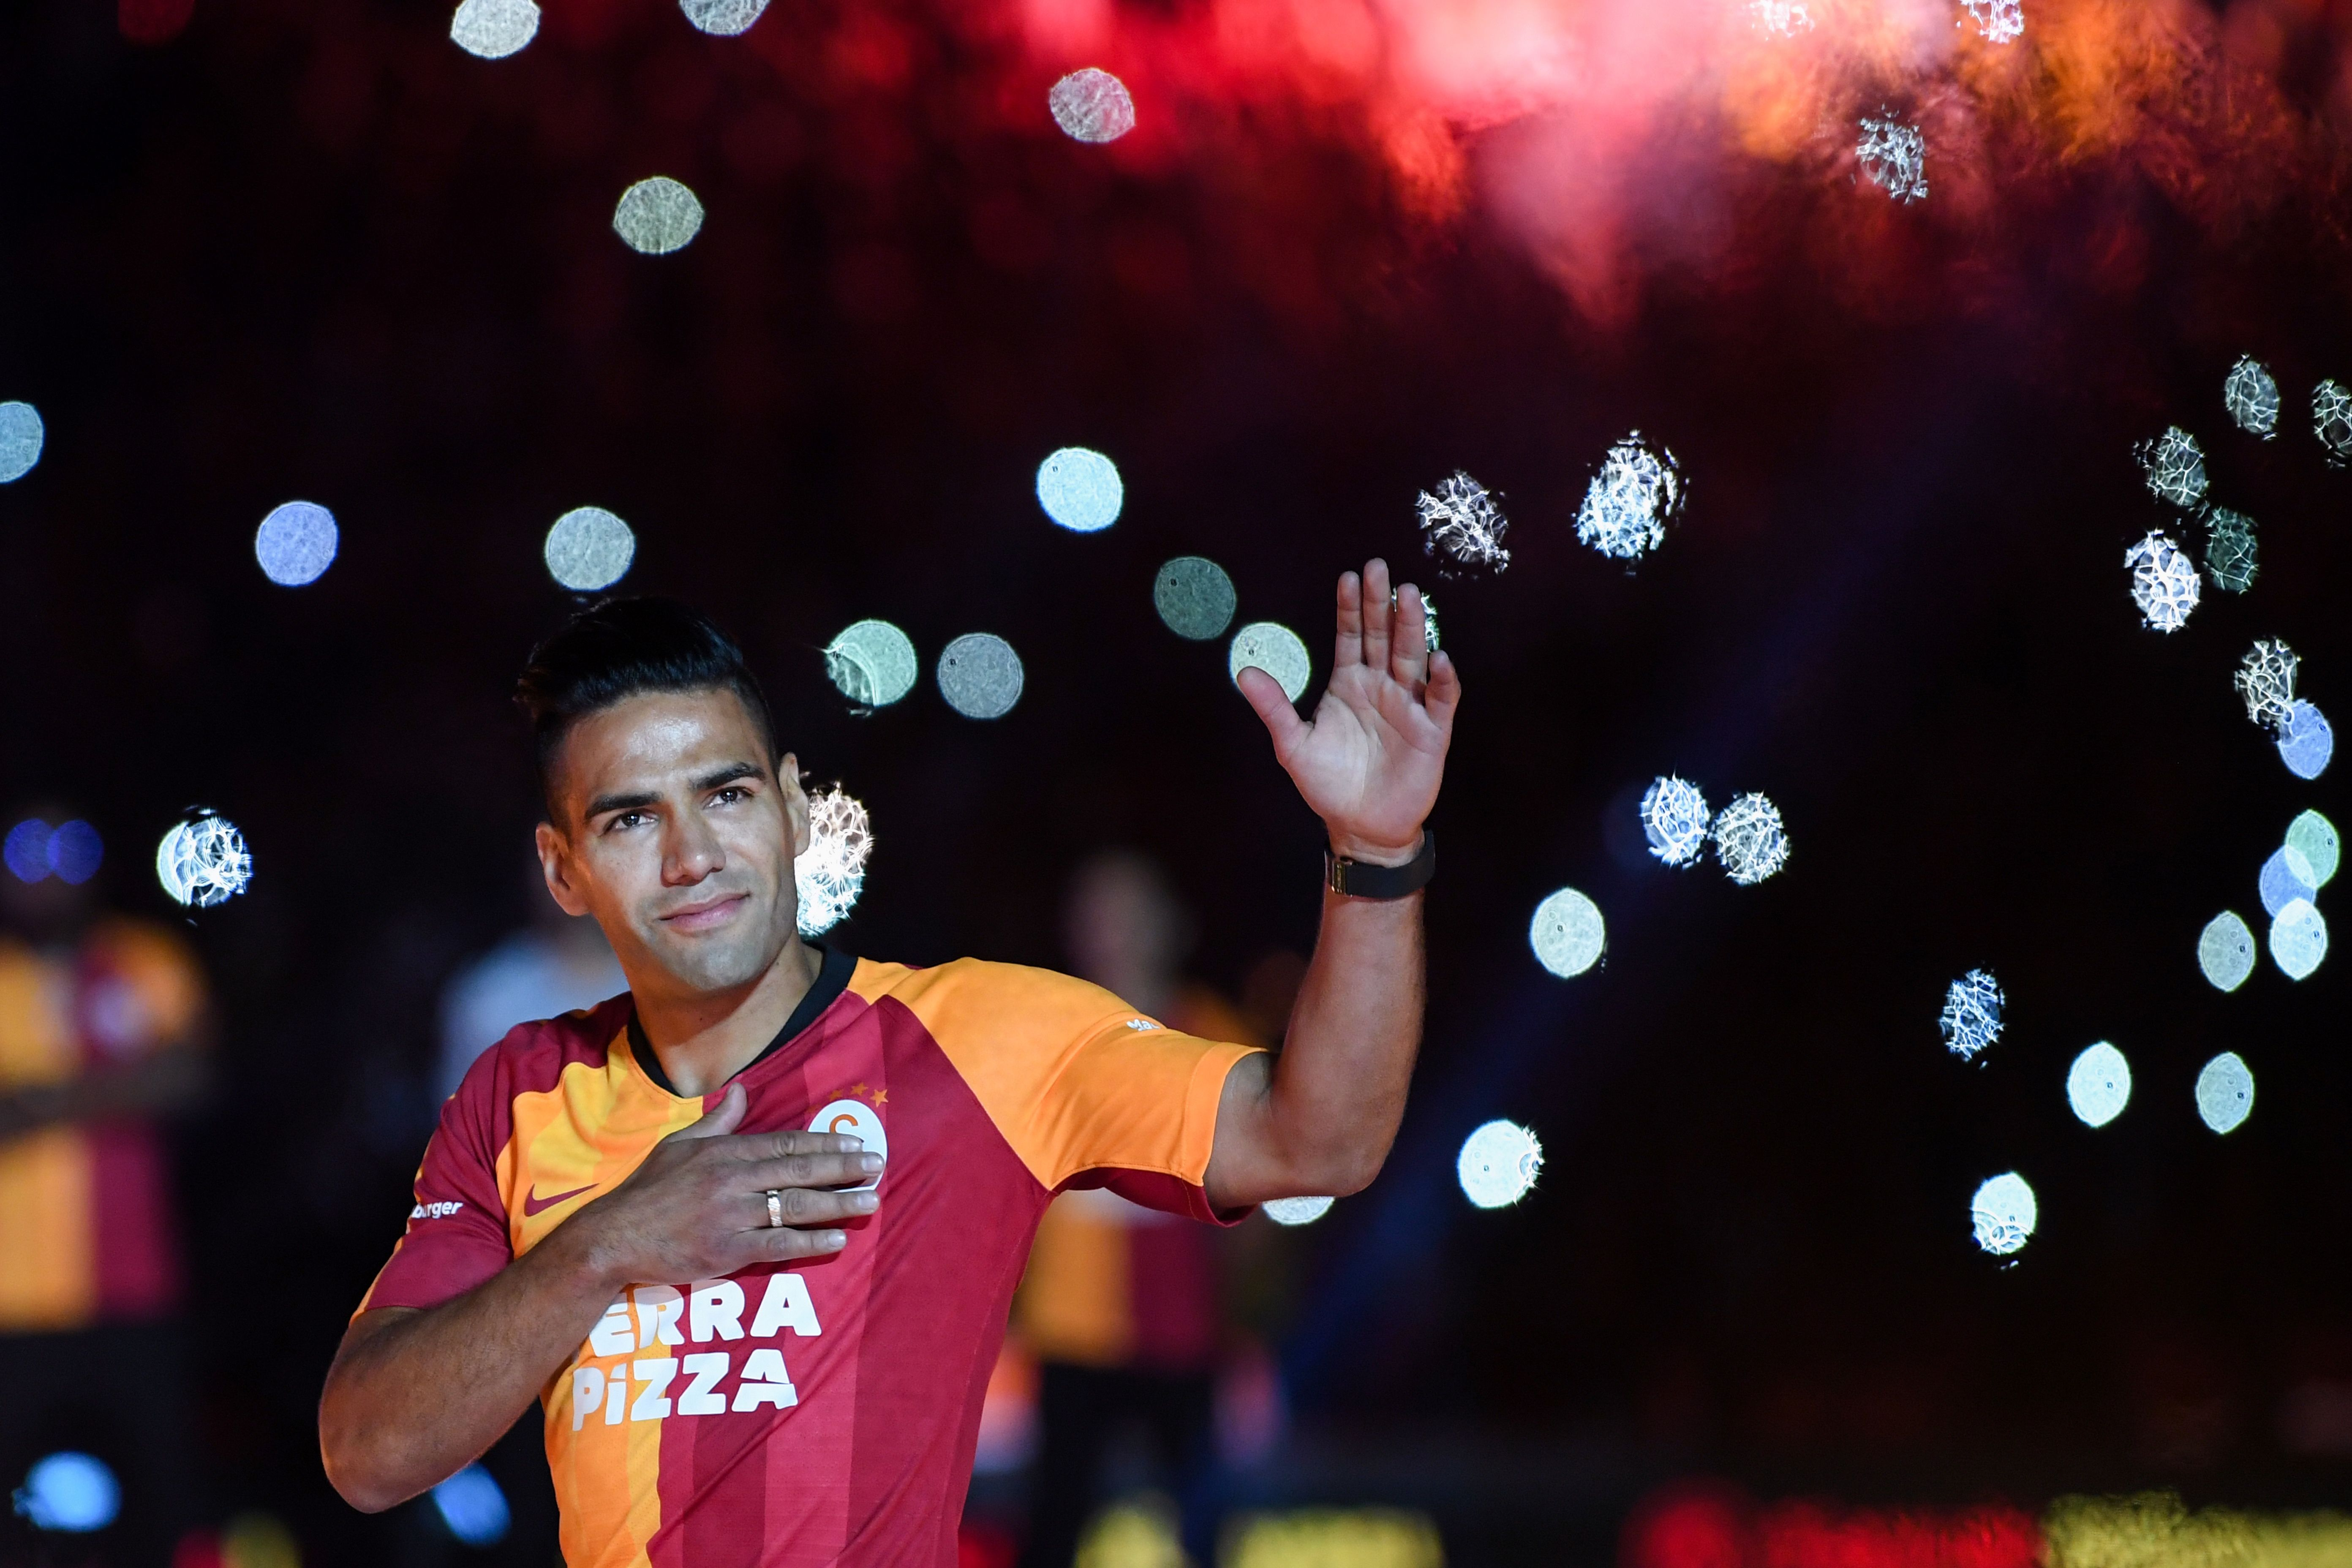 Radamel Falcao's experience will be key for Galatasaray (Photo by Ozan Kose/AFP/Getty Images)